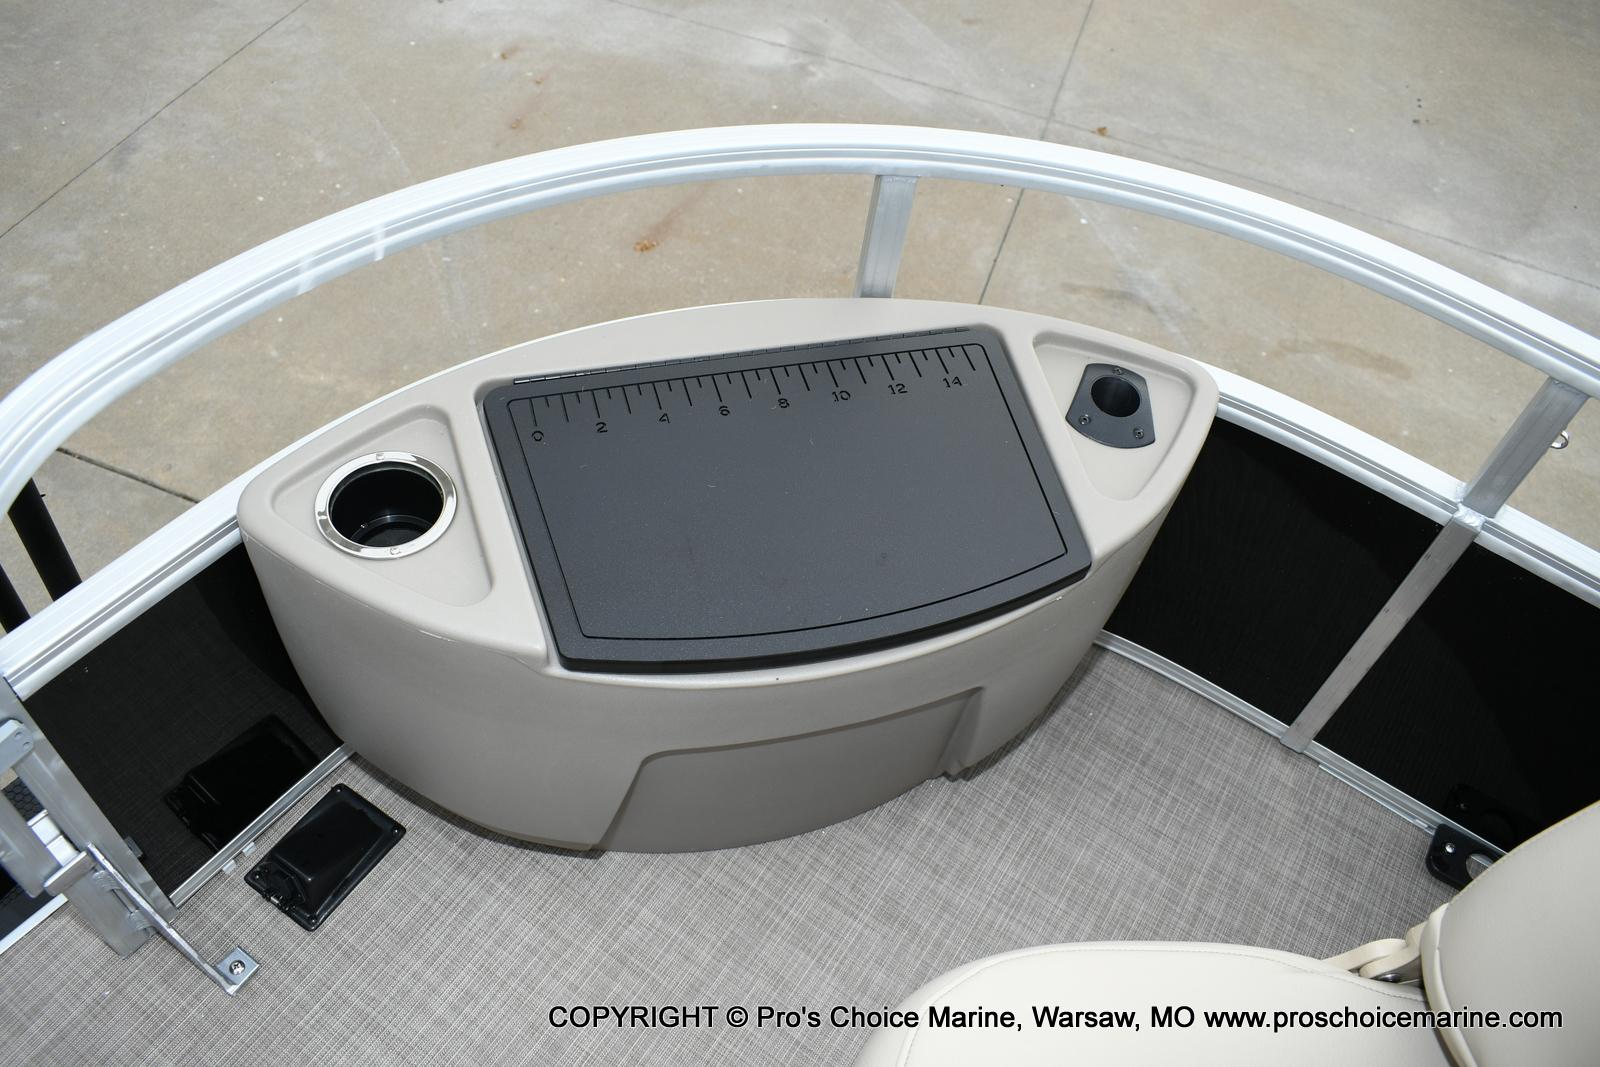 2020 Sun Tracker boat for sale, model of the boat is Fishin' Barge 20 DLX & Image # 40 of 50